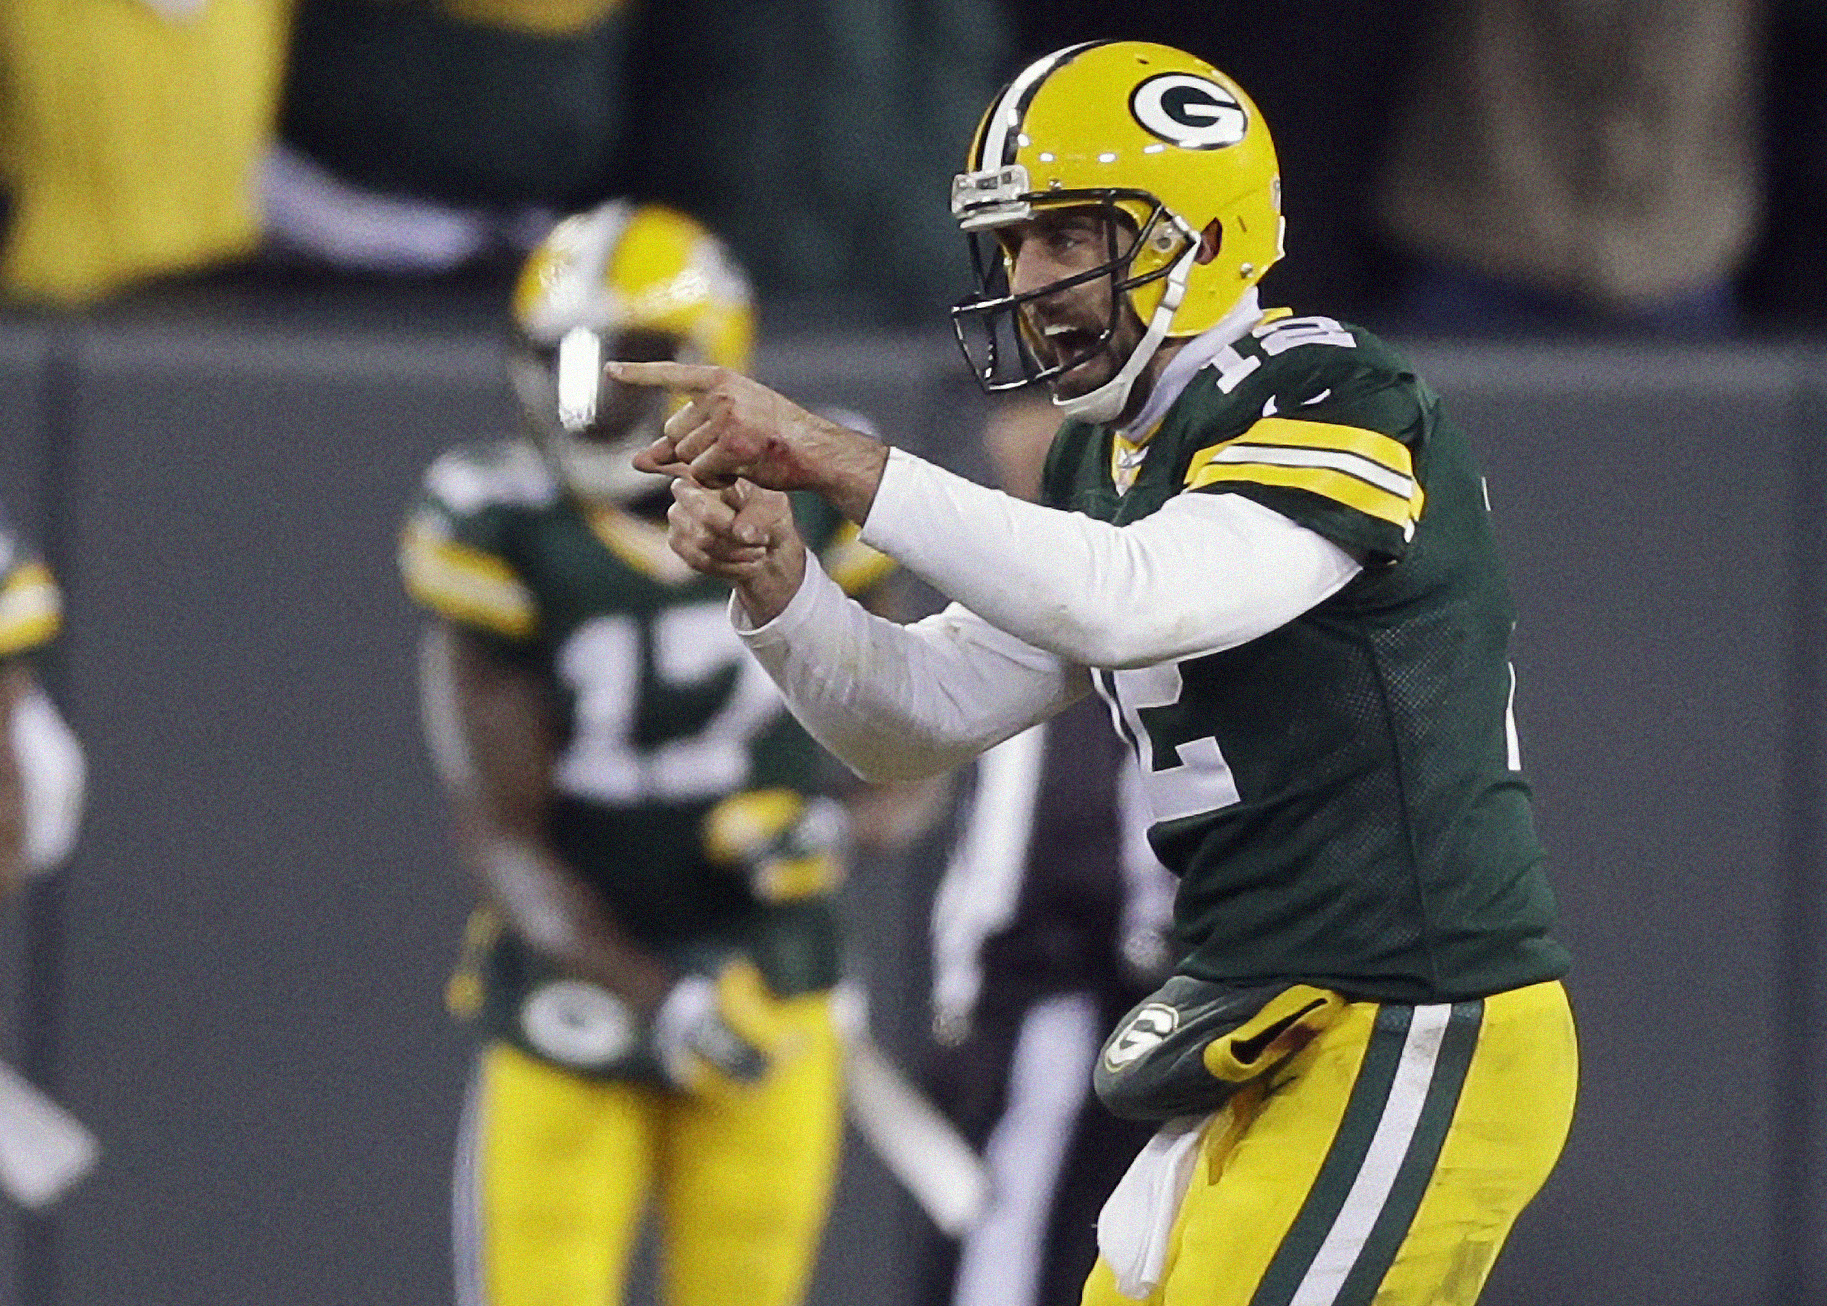 FILE - In this Nov. 30, 2014, file photo, Green Bay Packers quarterback Aaron Rodgers celebrates a 45-yard touchdown pass to Jordy Nelson during the first half of an NFL football game against the New England Patriots in Green Bay, Wis. With a healthy Rodg